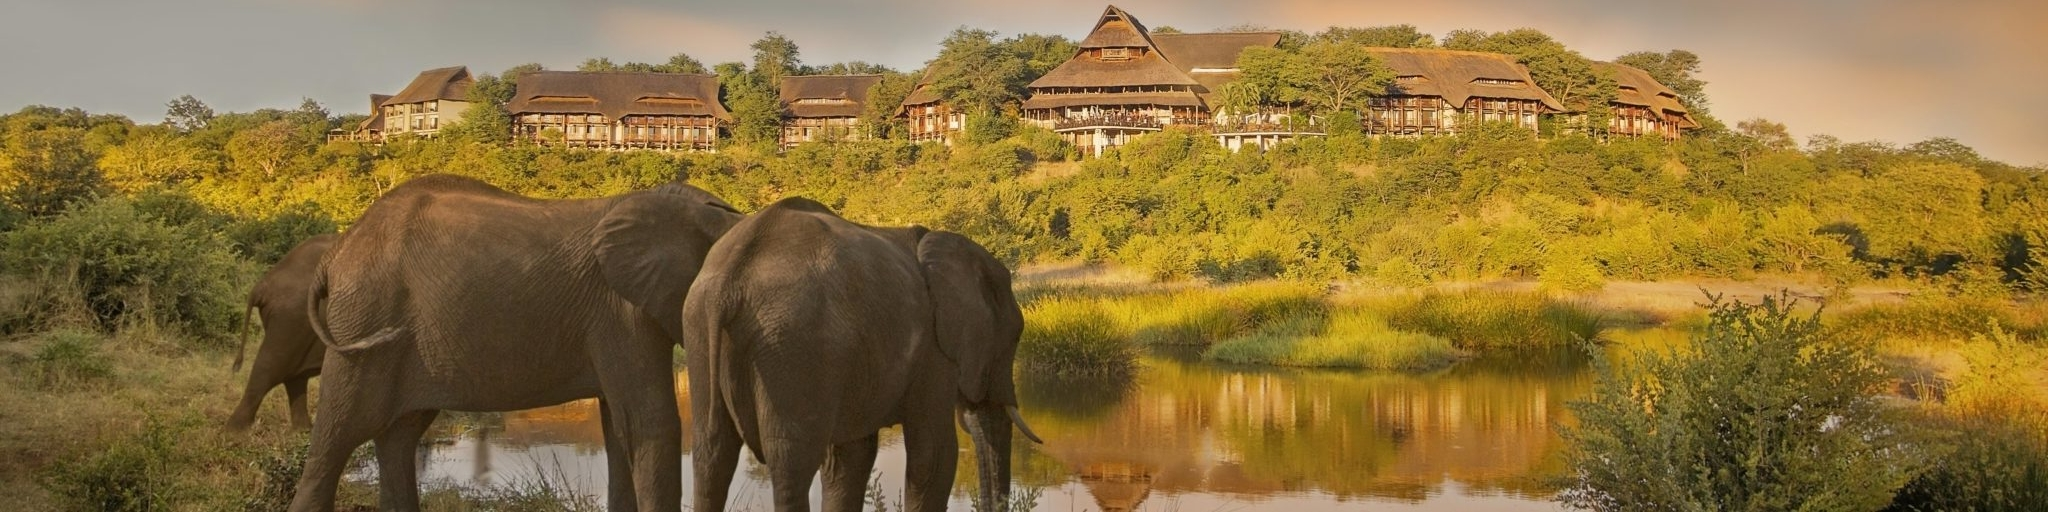 Victoria Falls Safari Lodge elephants in front of lodge banner